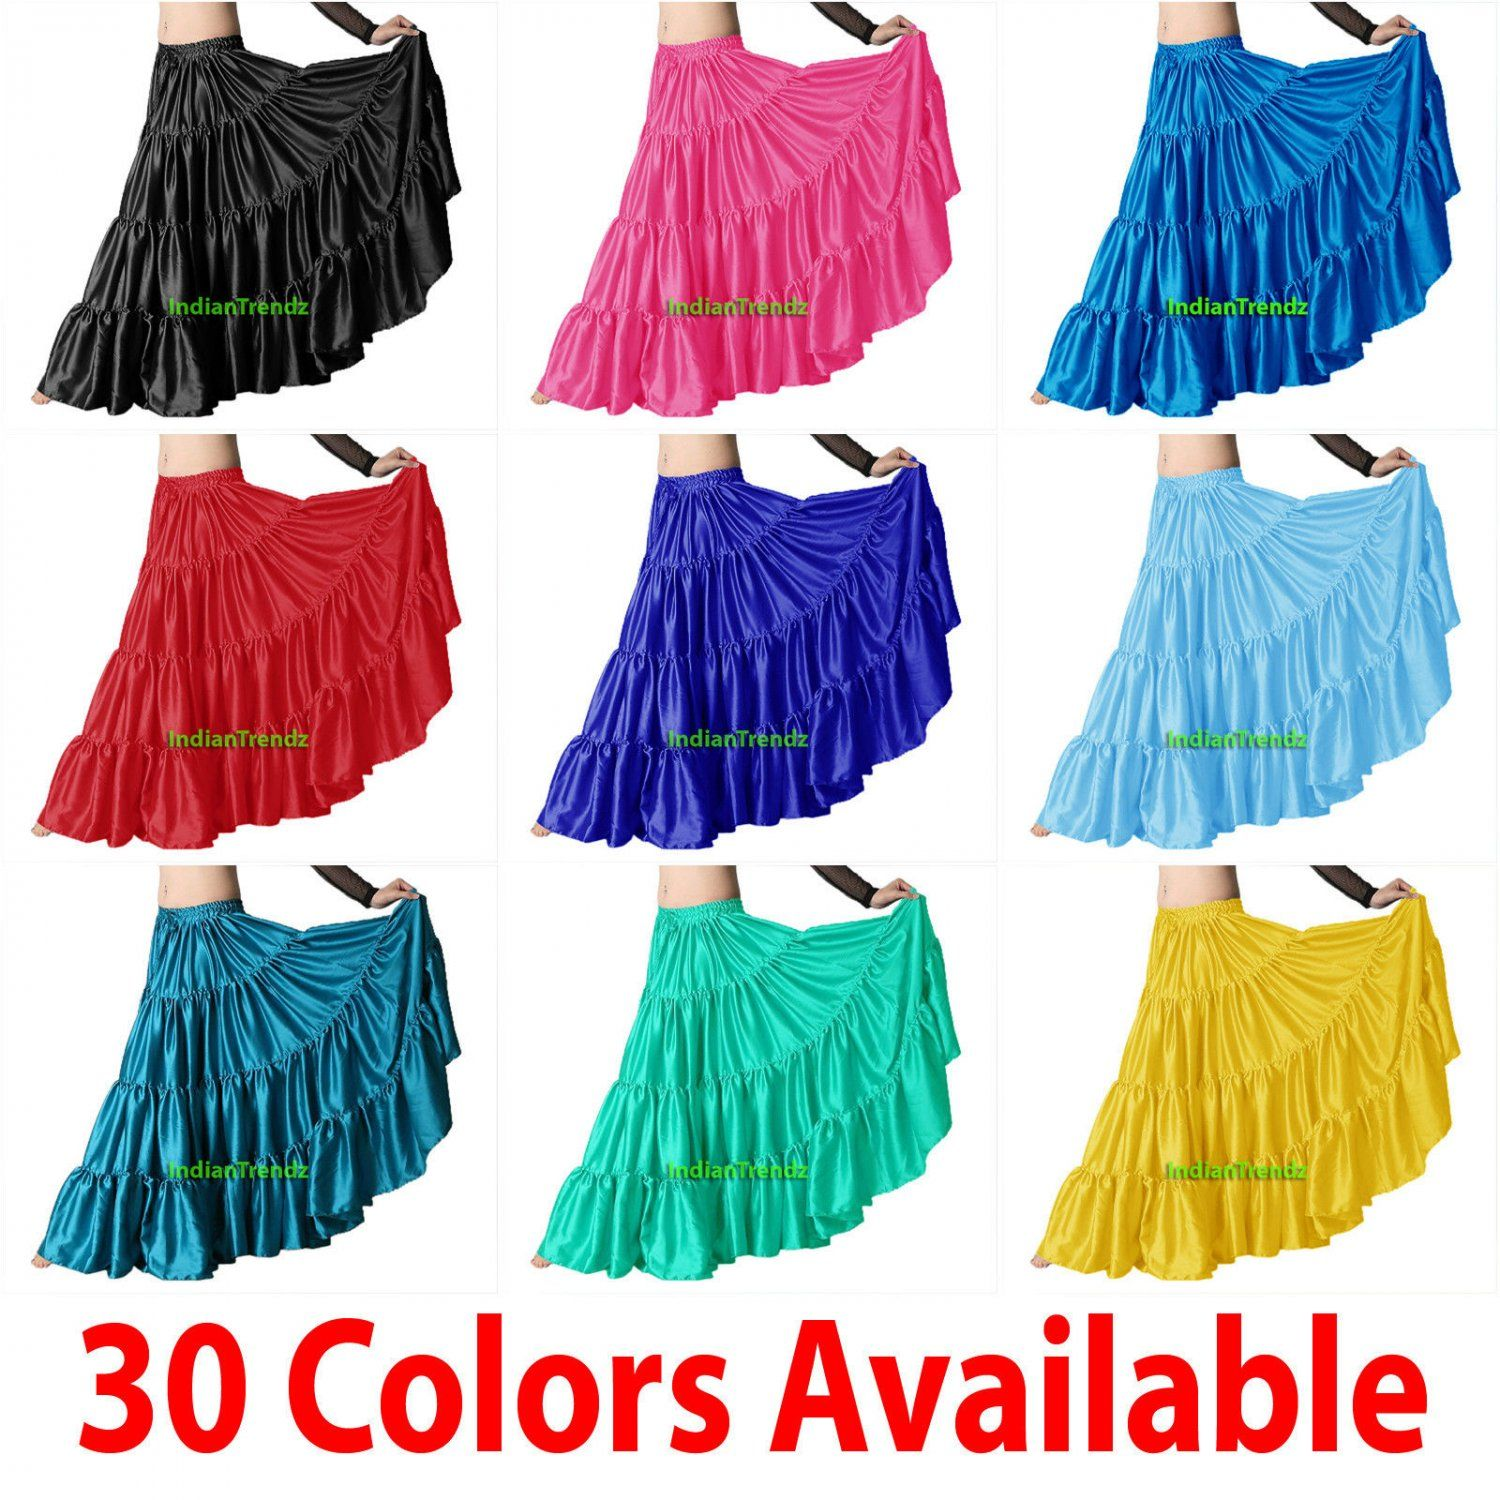 Indian Trendy Womens Satin 6 Yard 4 Tiered Gypsy Belly Dance Skirt Flamenco